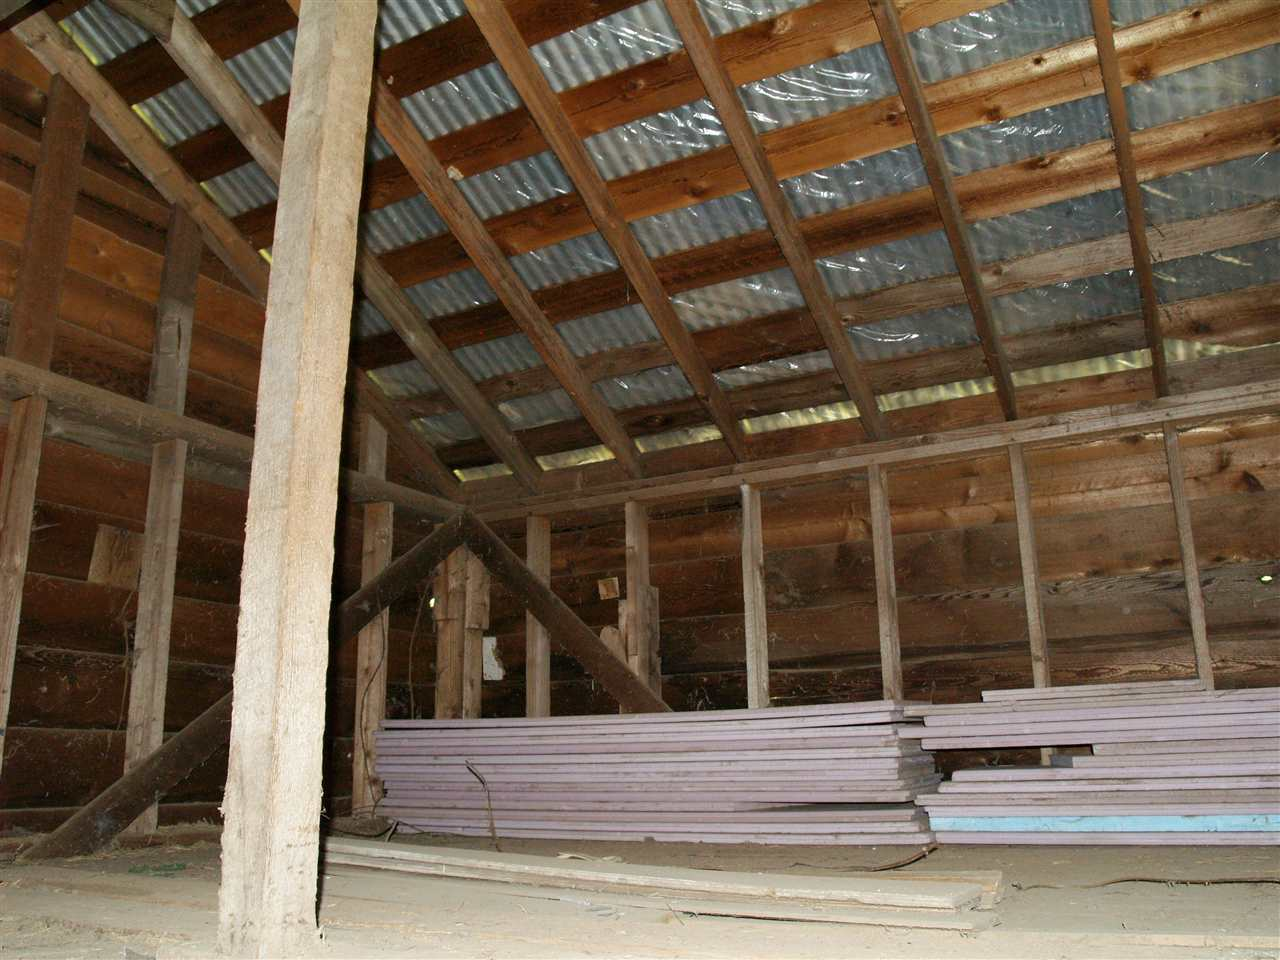 The barn has 2 levels so can accomodate a lot of storage area.